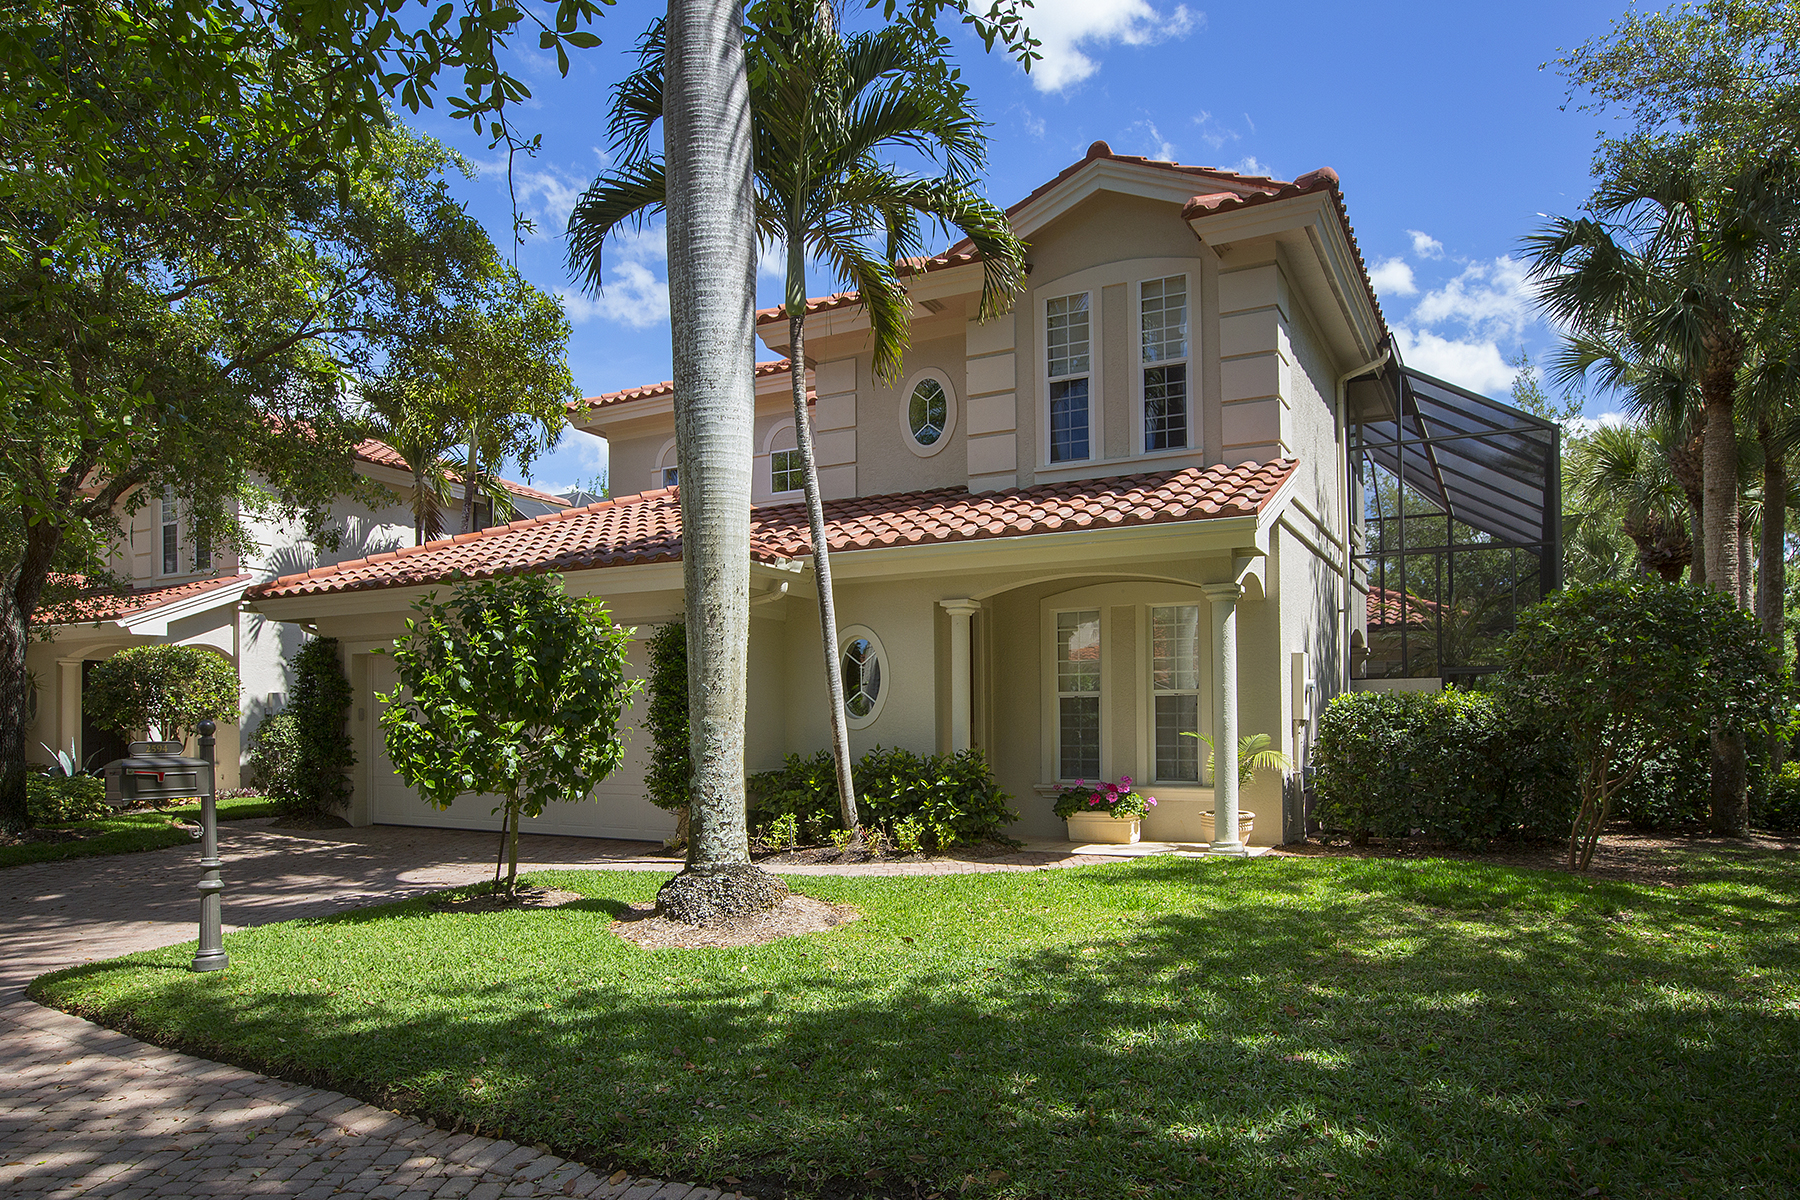 Single Family Home for Sale at 2594 Lermitage Ln , Naples, FL 34105 2594 Lermitage Ln Naples, Florida, 34105 United States